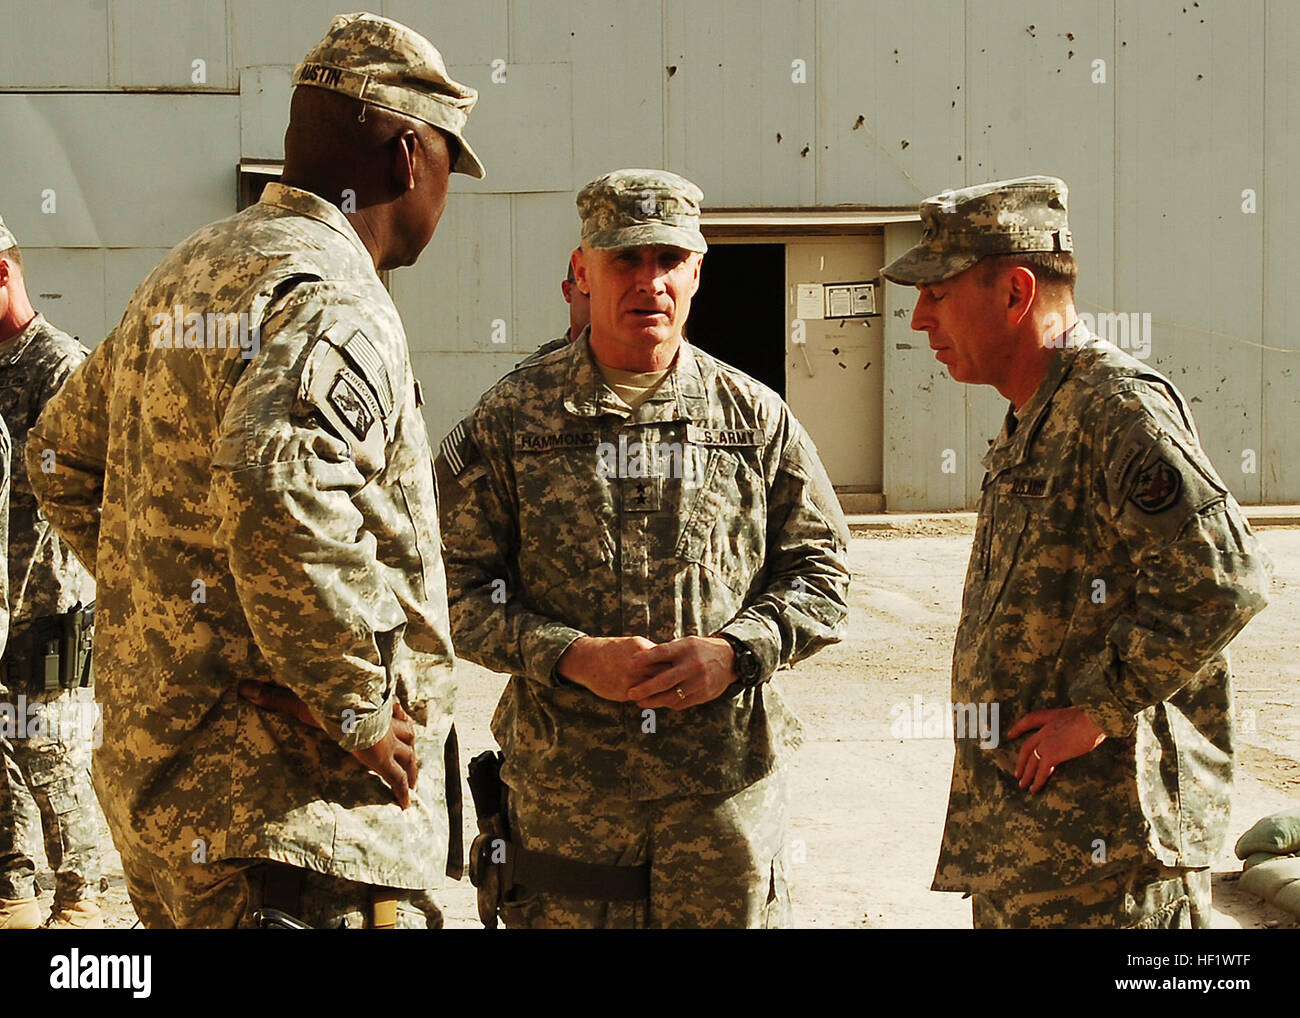 Minutes after a memorial service at Forward Operating Base Falcon, Maj. Gen. Jeff Hammond (center), the commanding - Stock Image